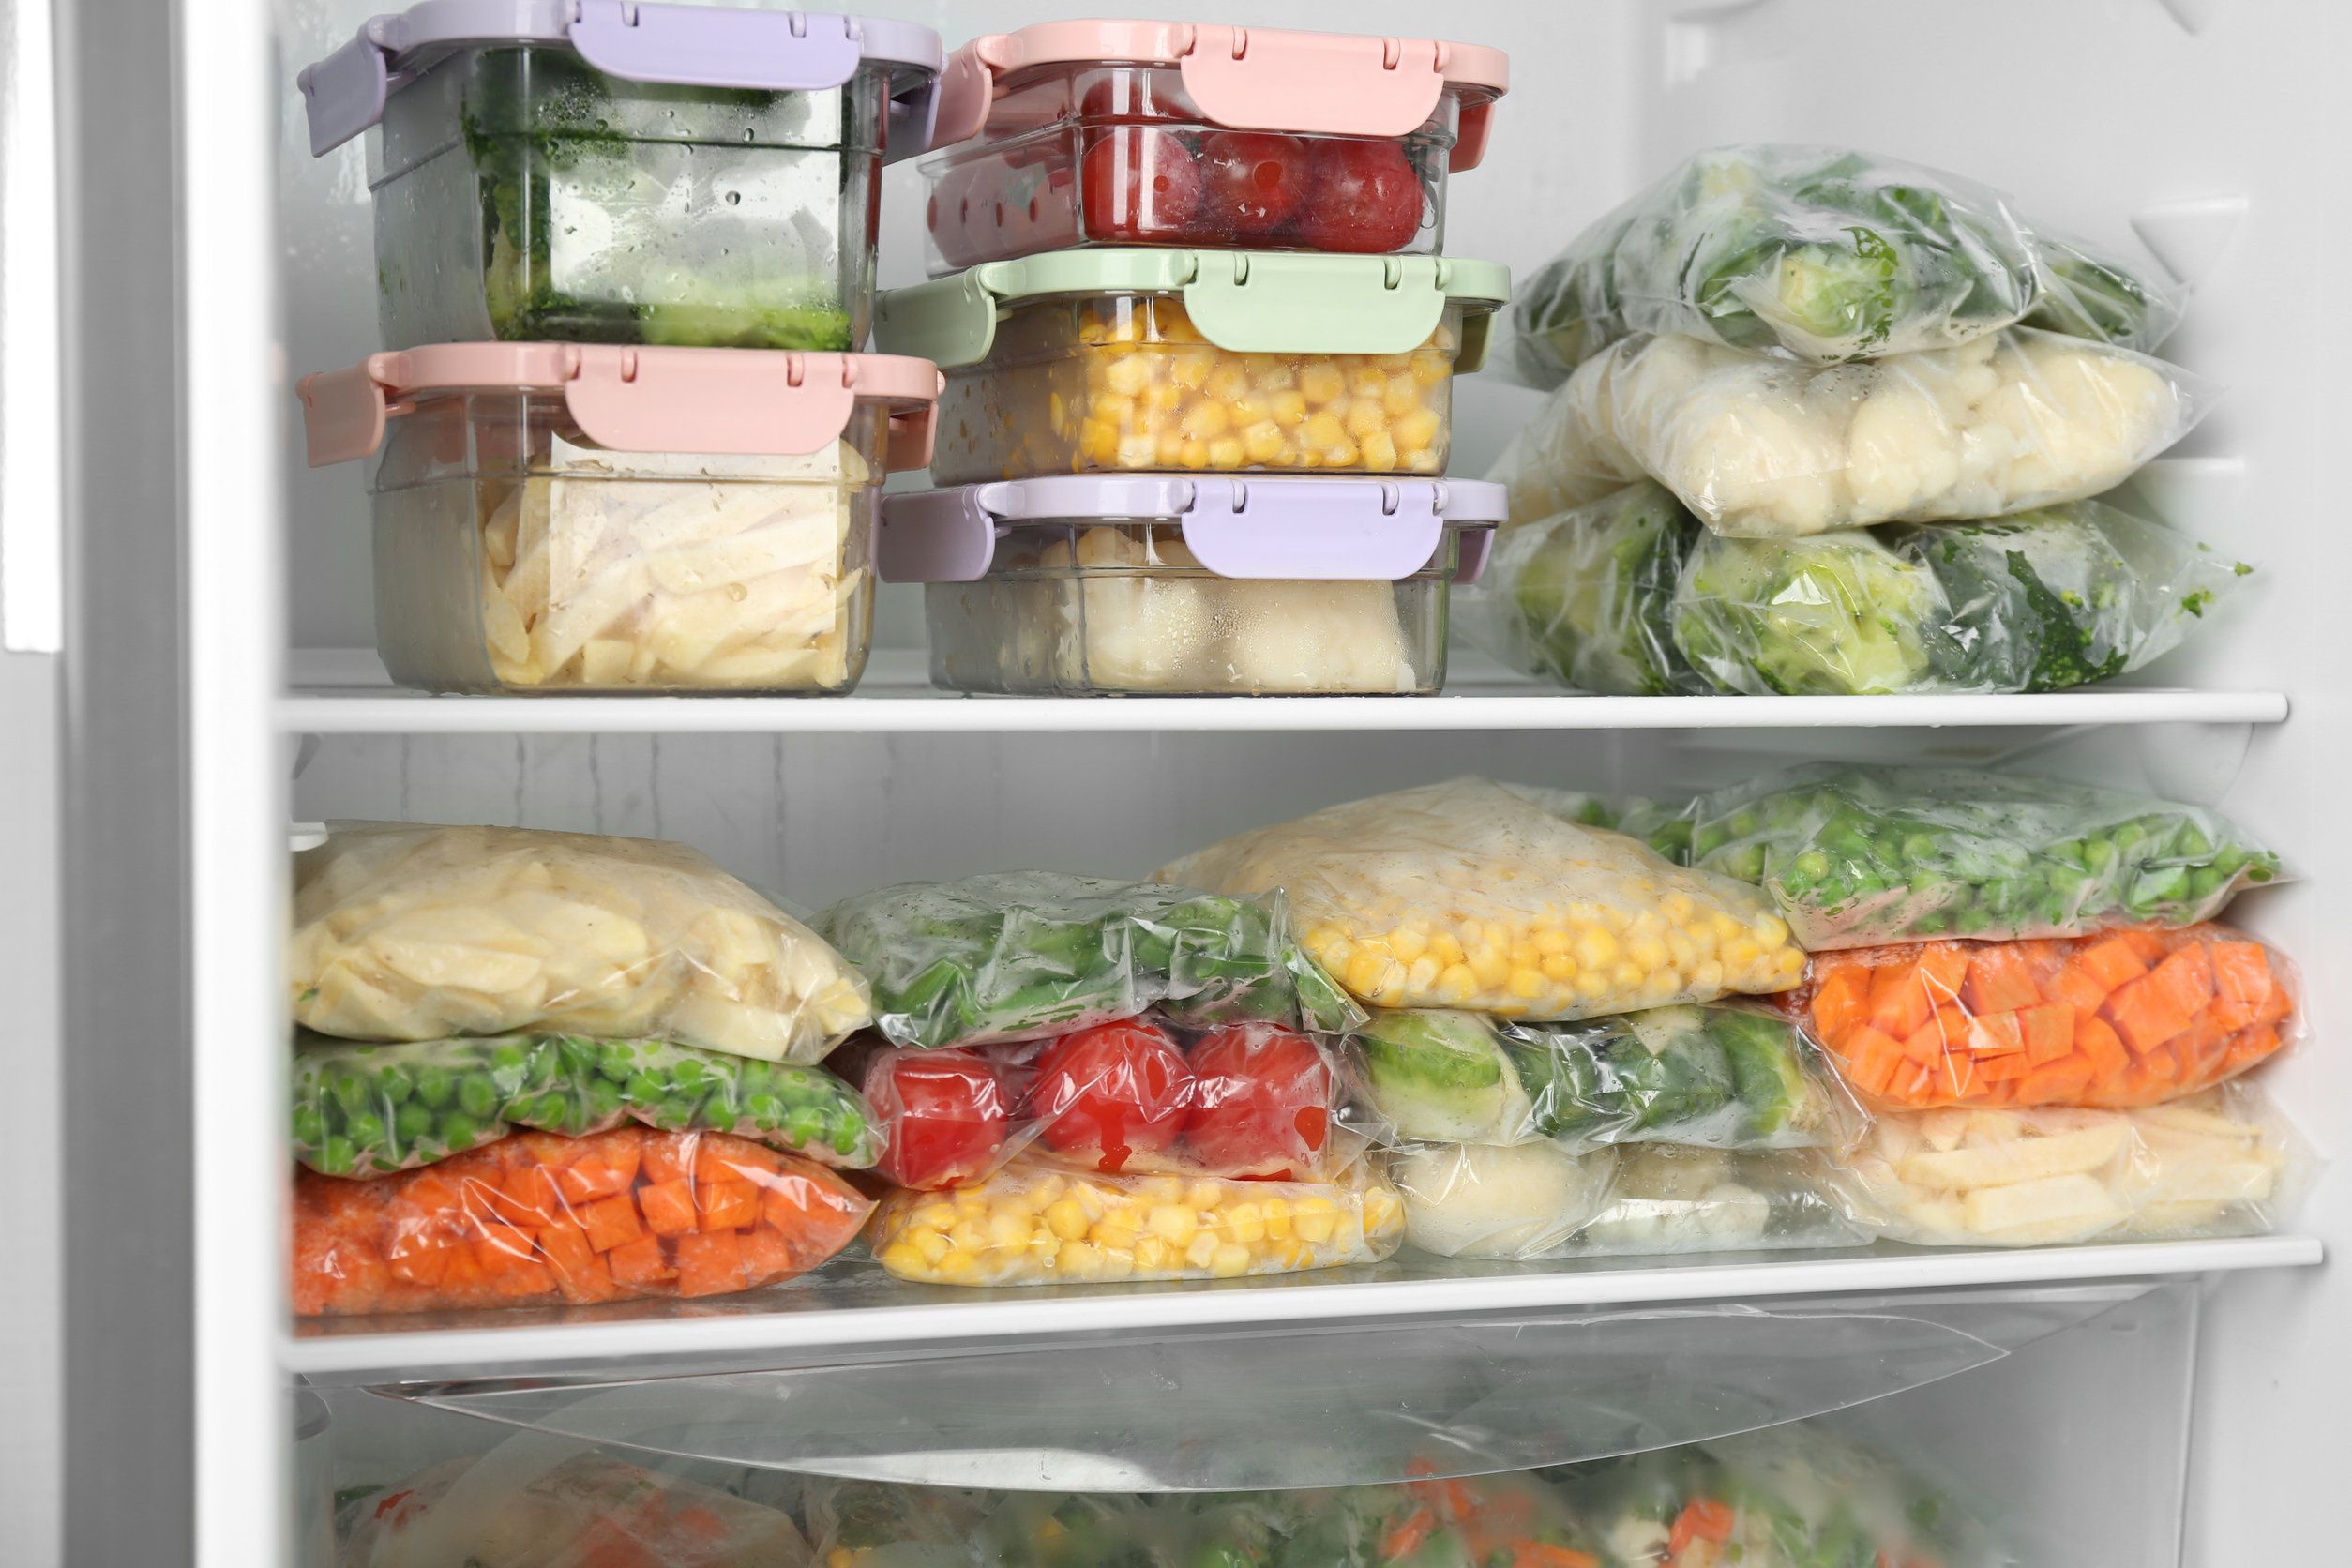 Keeping food in the freezer